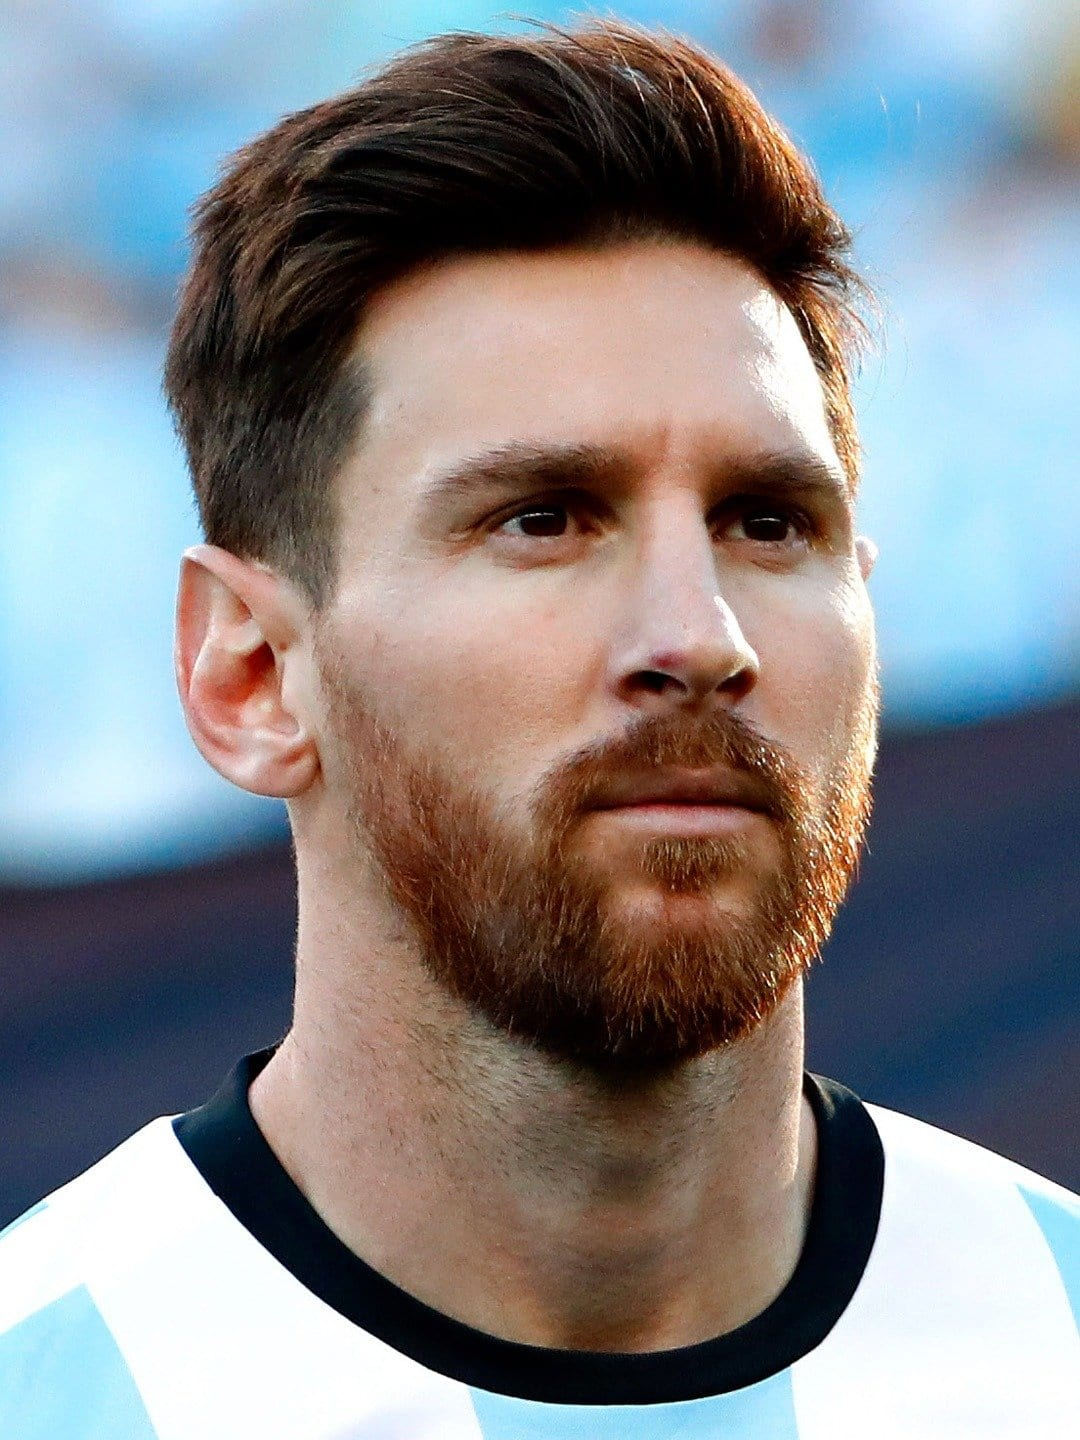 Lionel Messi Argentine Soccer Player